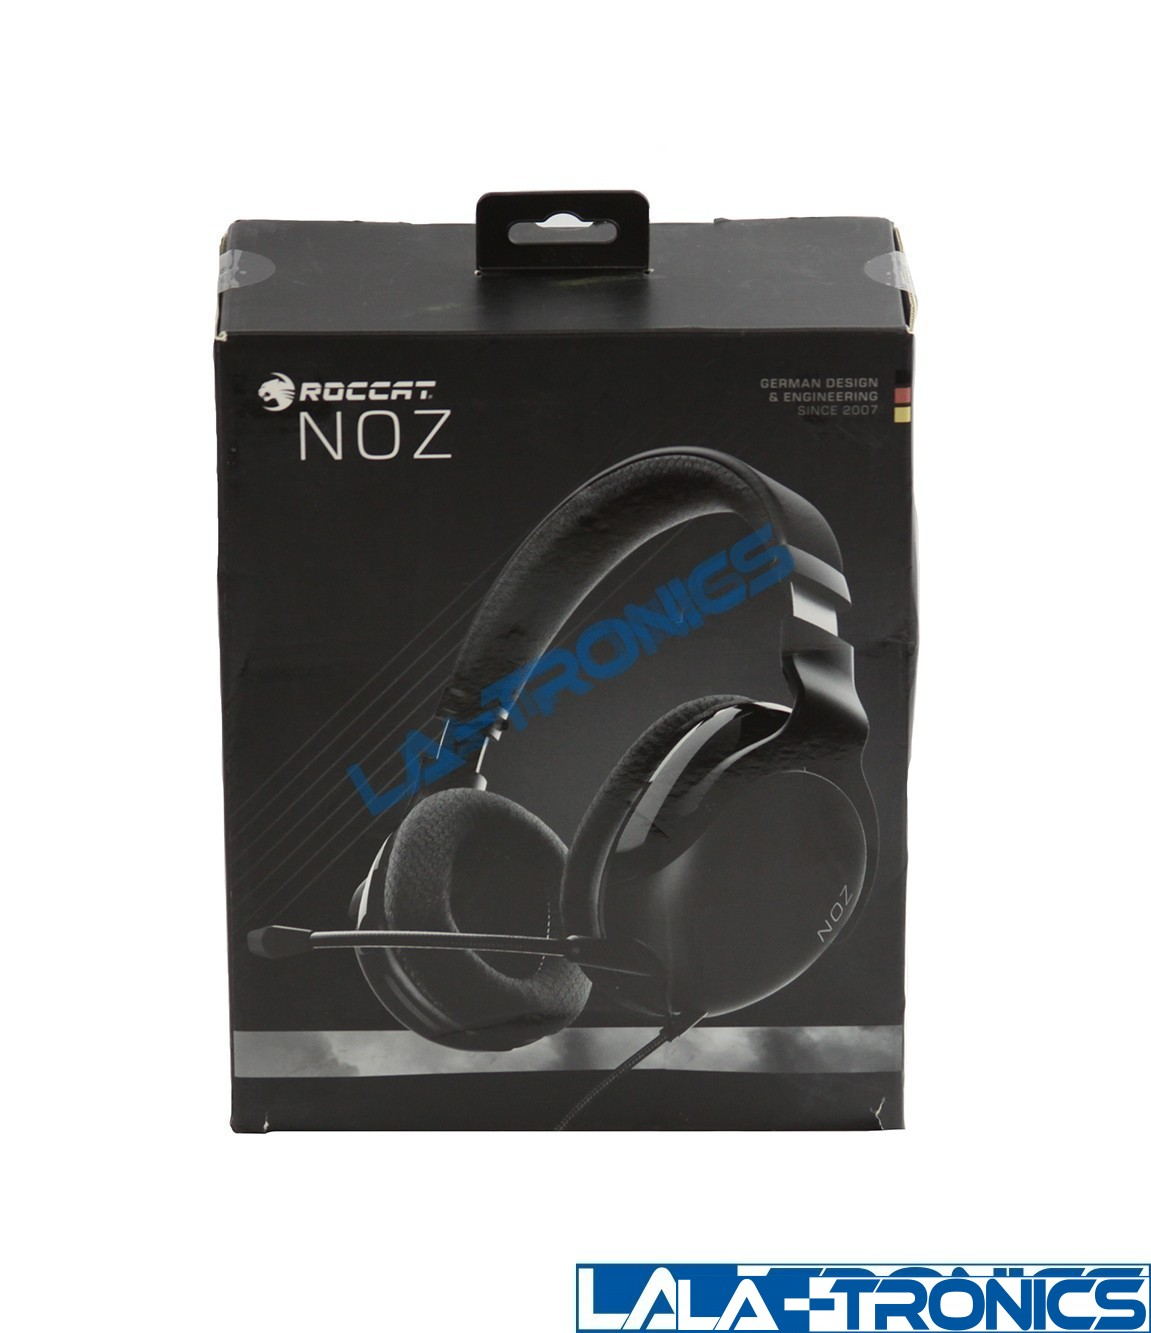 ROCCAT NOZ ROC-14-520-AS Stereo Gaming Headset - Black